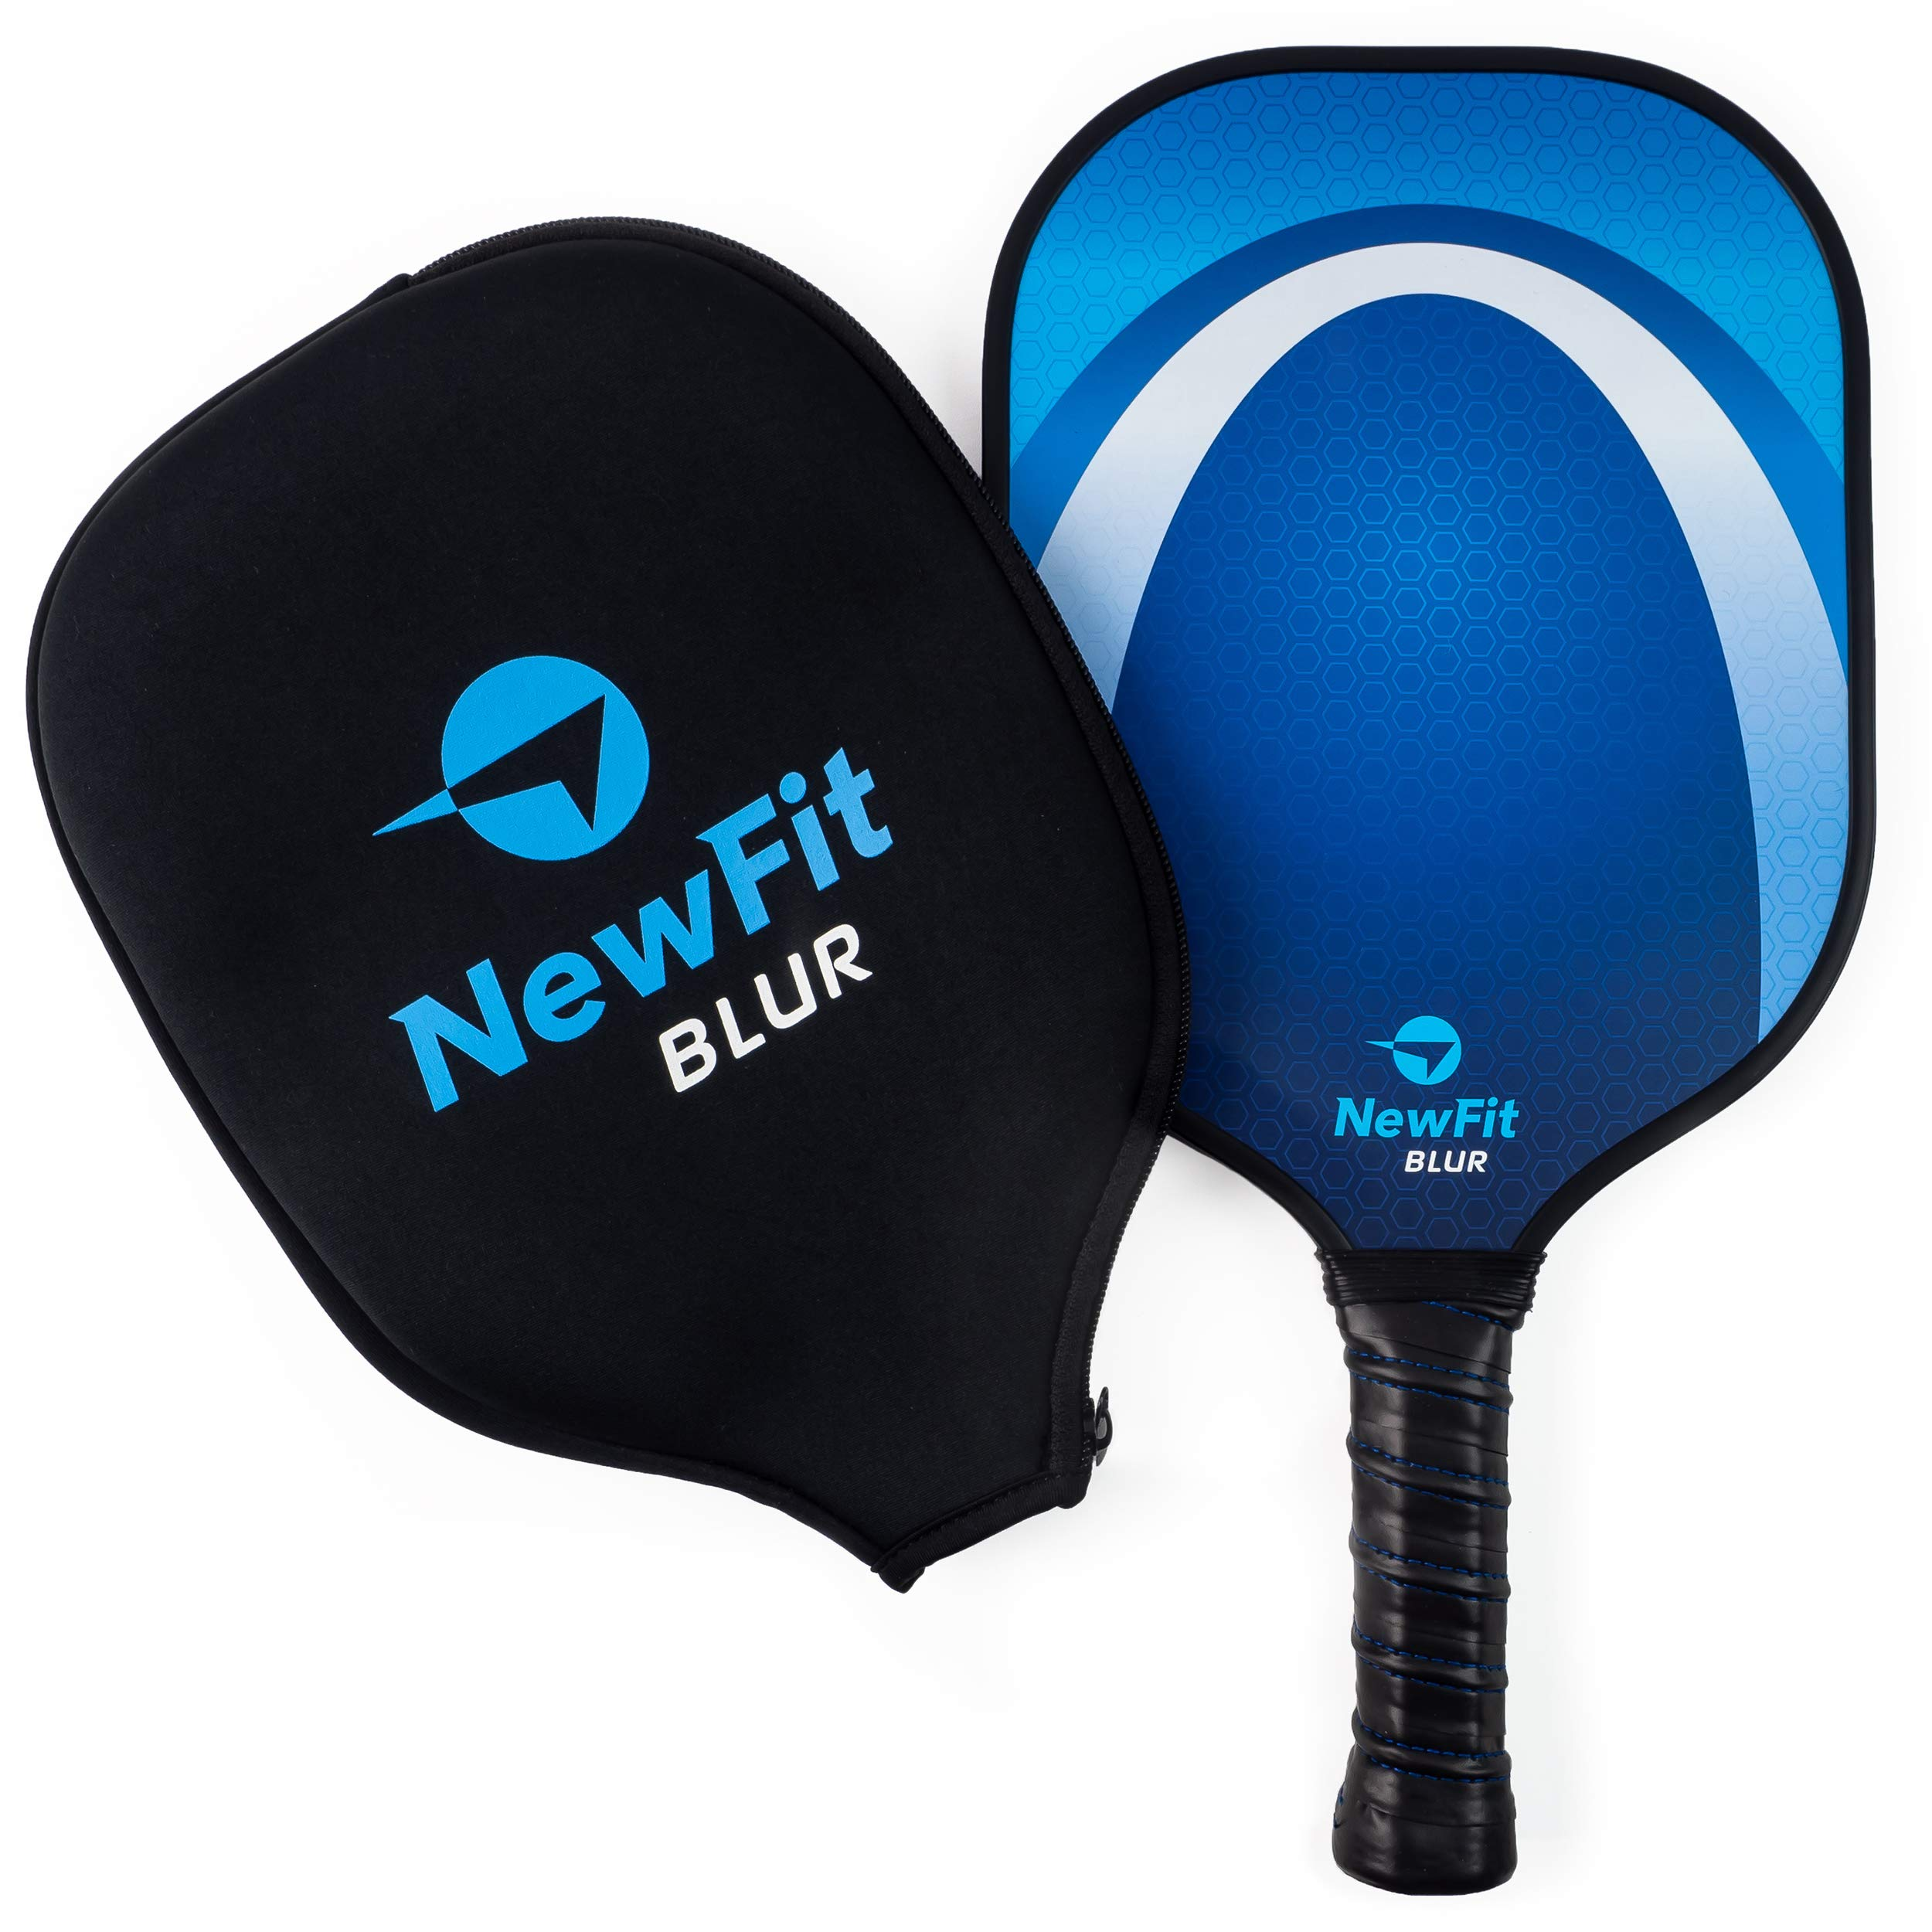 NewFit Blur Pickleball Paddle | USAPA Approved | Graphite Face & Polymer Core for a Quiet and Light Racket (Blue Single)